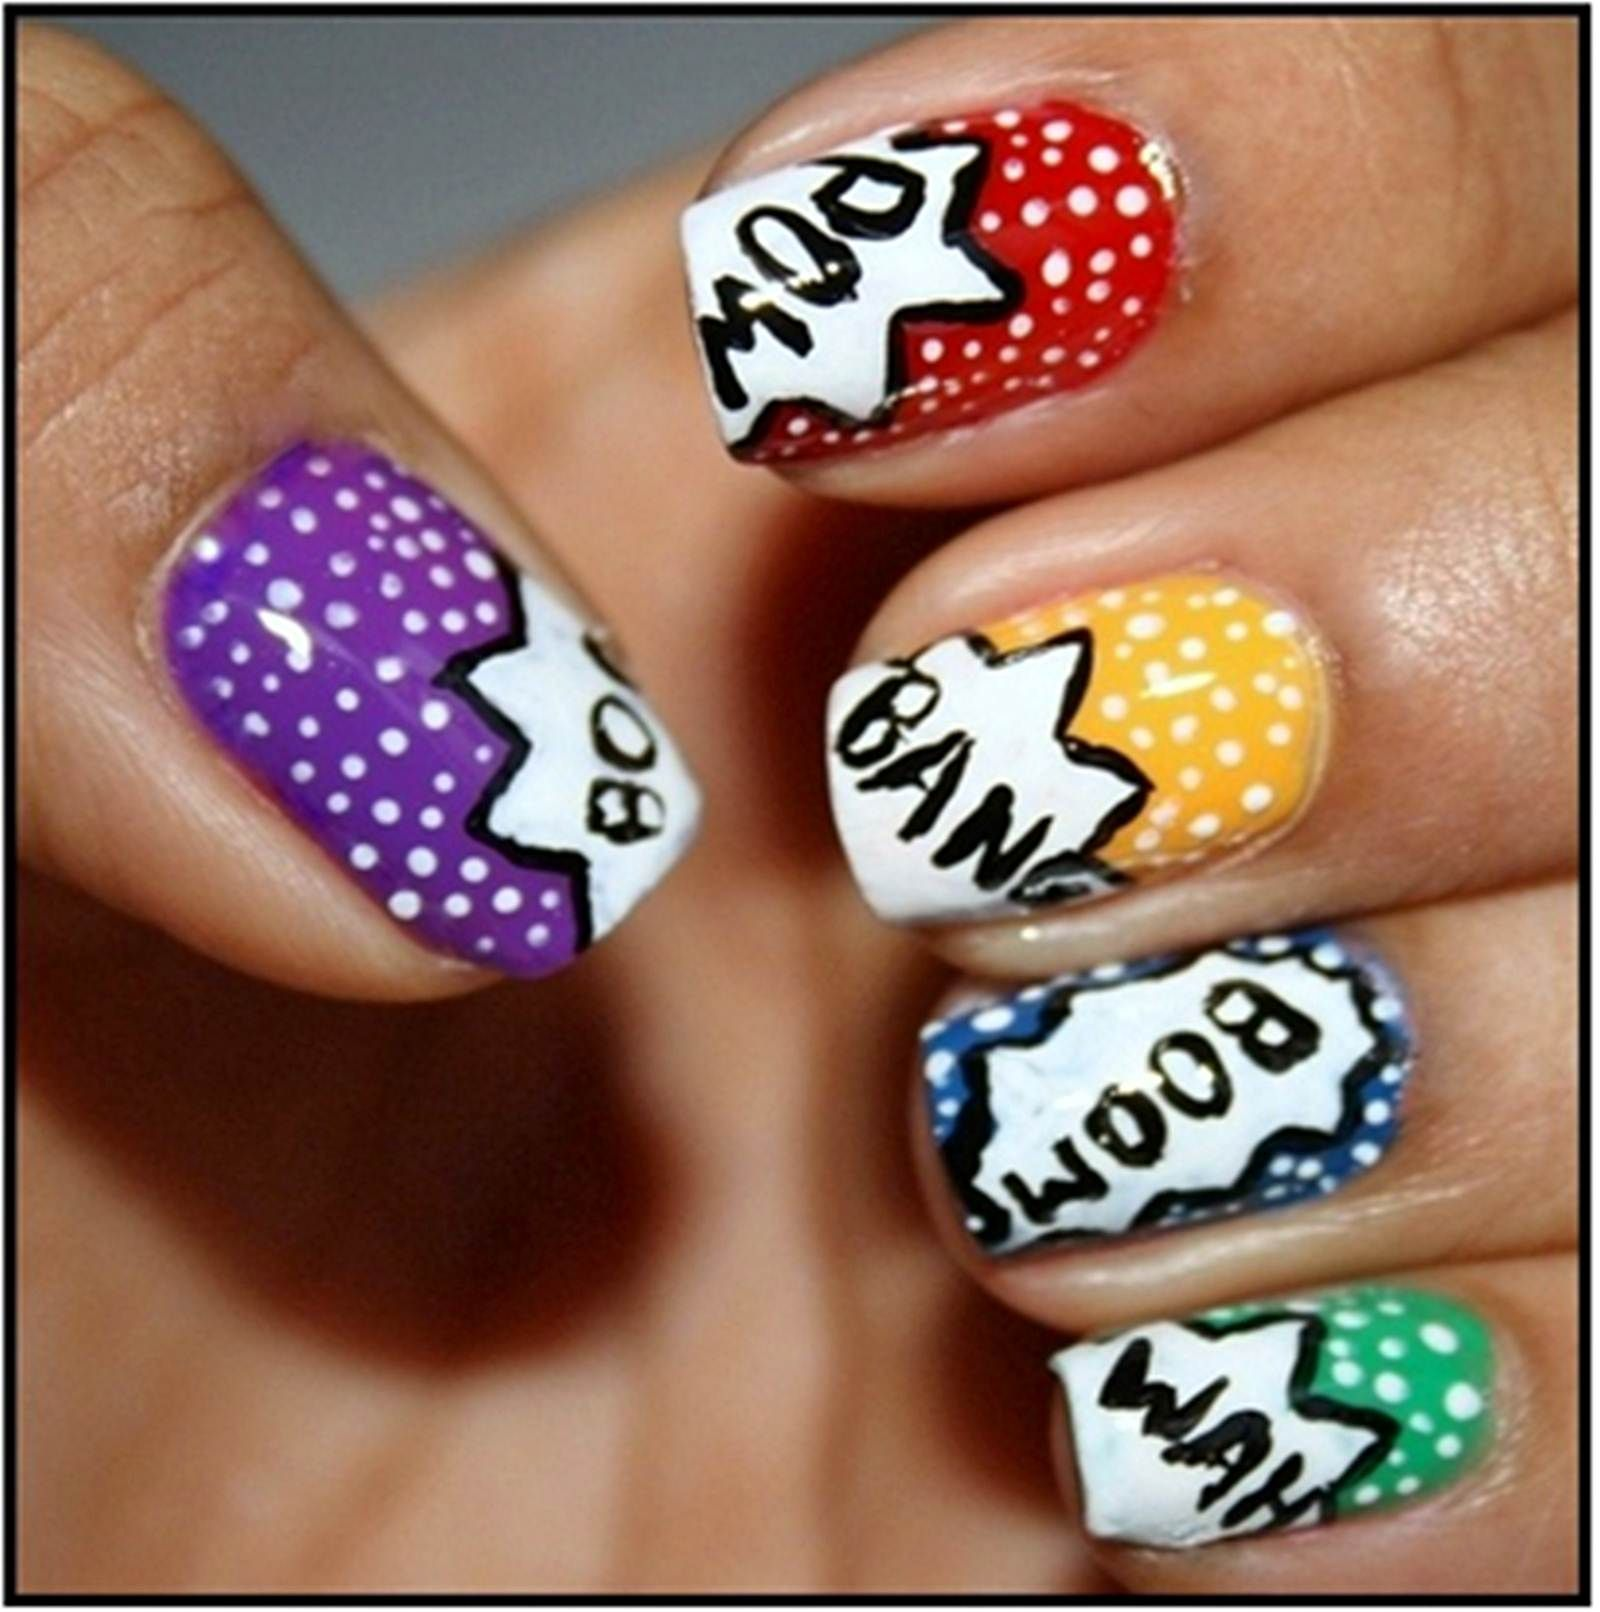 Nail Art Designs For Beginners At Home Step By Step#prom